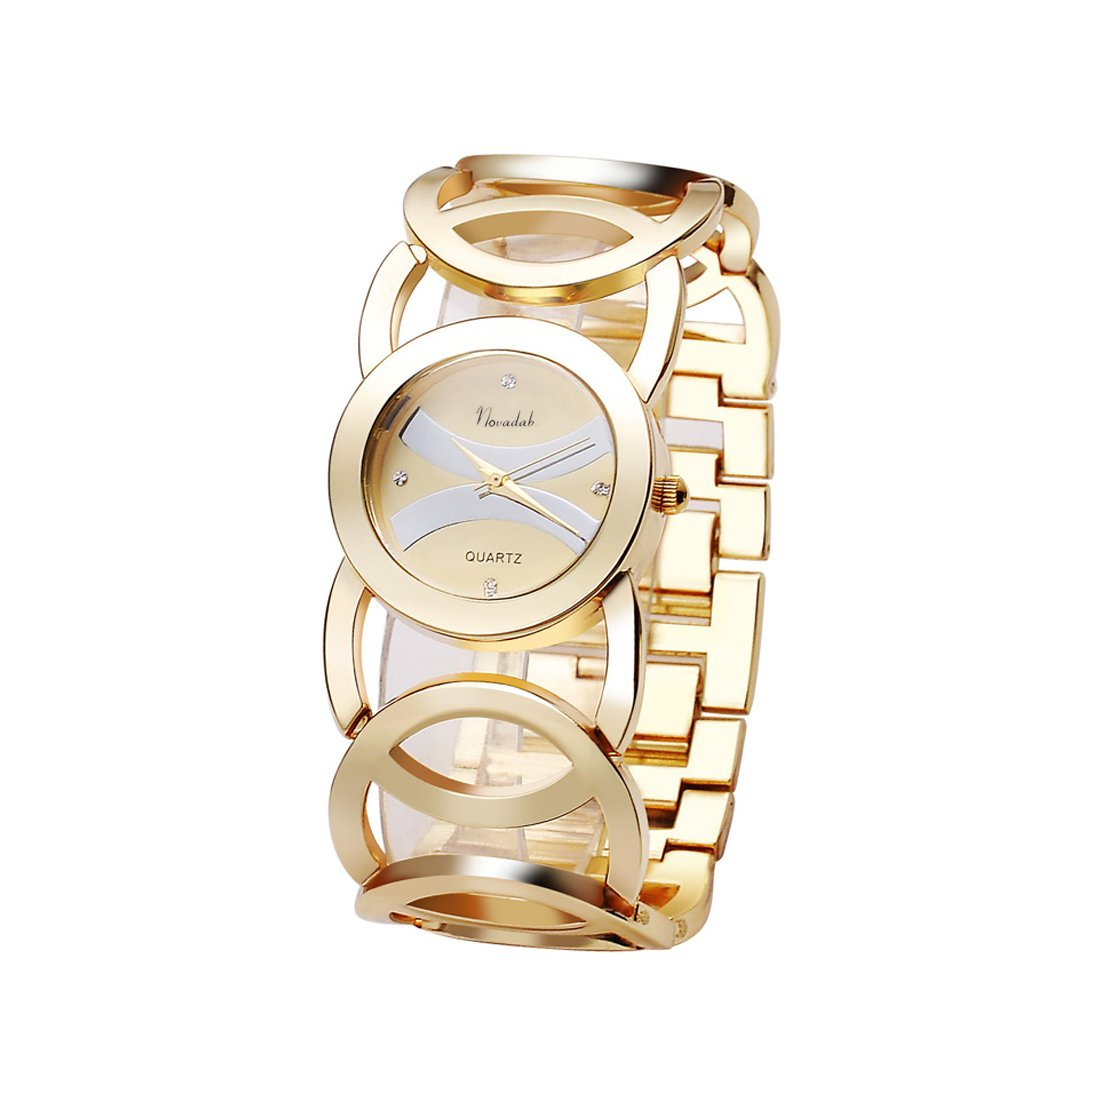 Novadab Immortal Love Accent Loop Bracelet Watch, Wrist Watches for Ladies (Gold)